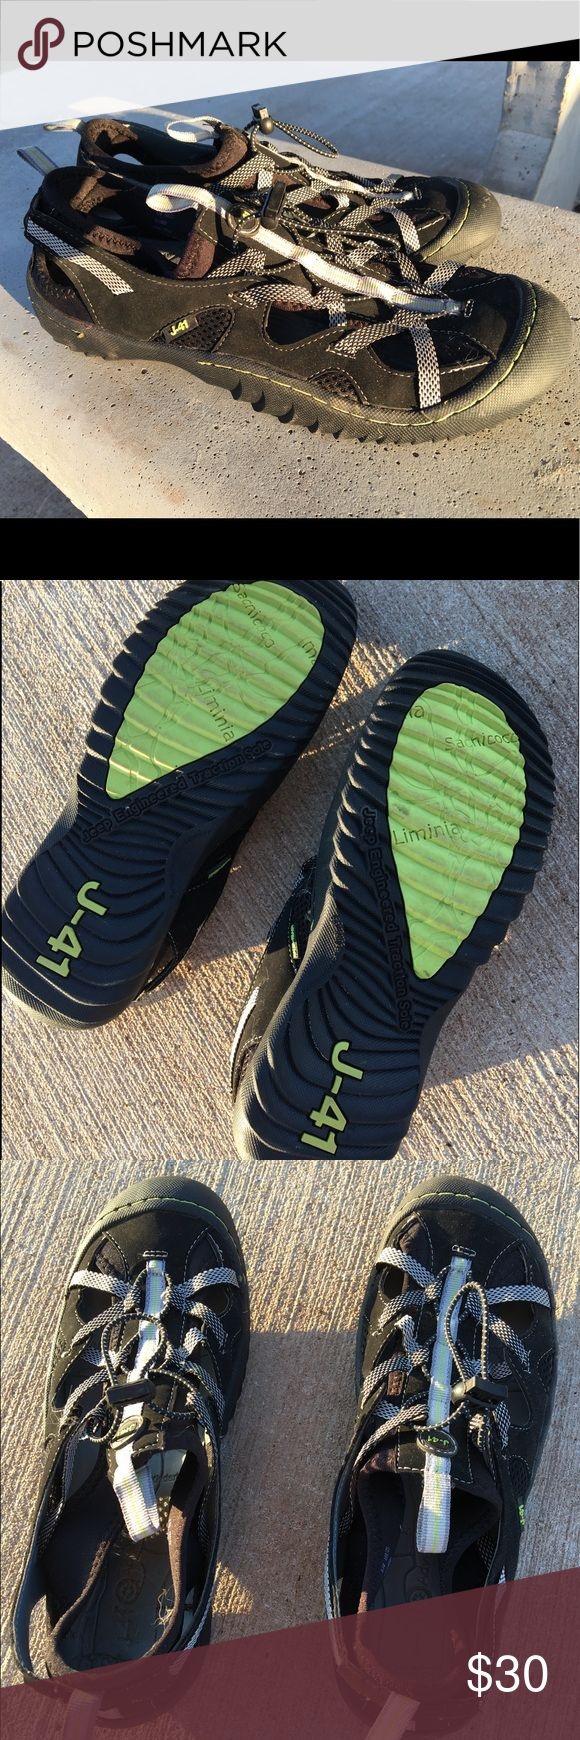 Jeep J41 water shoes sandals beach bungee Worn once. Like new jeep Shoes Sandals